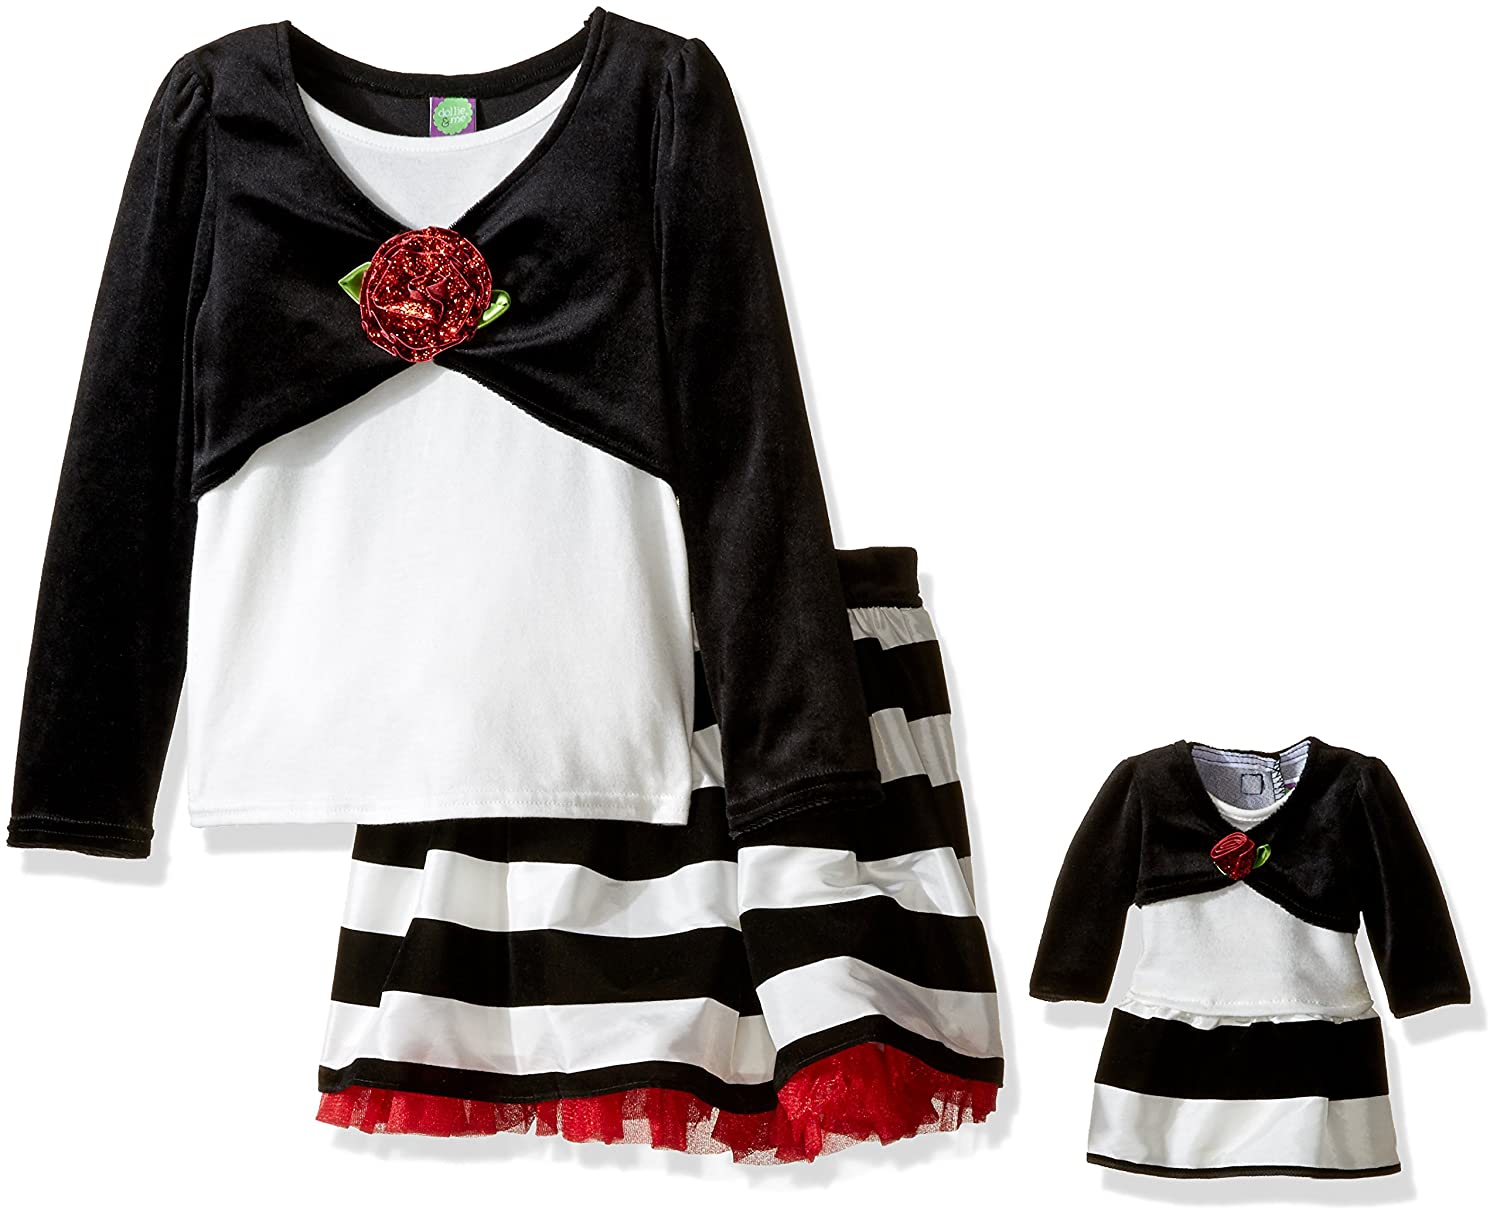 Dollie & Me Girls' Top & Skirt with Matching Doll Outfit 5165611